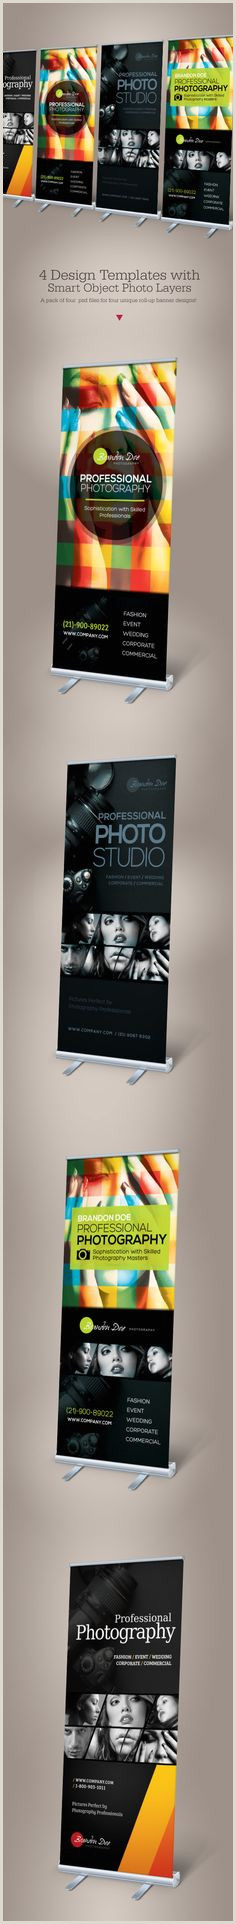 Pull Up Banner 100 Best Pull Up Roller Banners Images